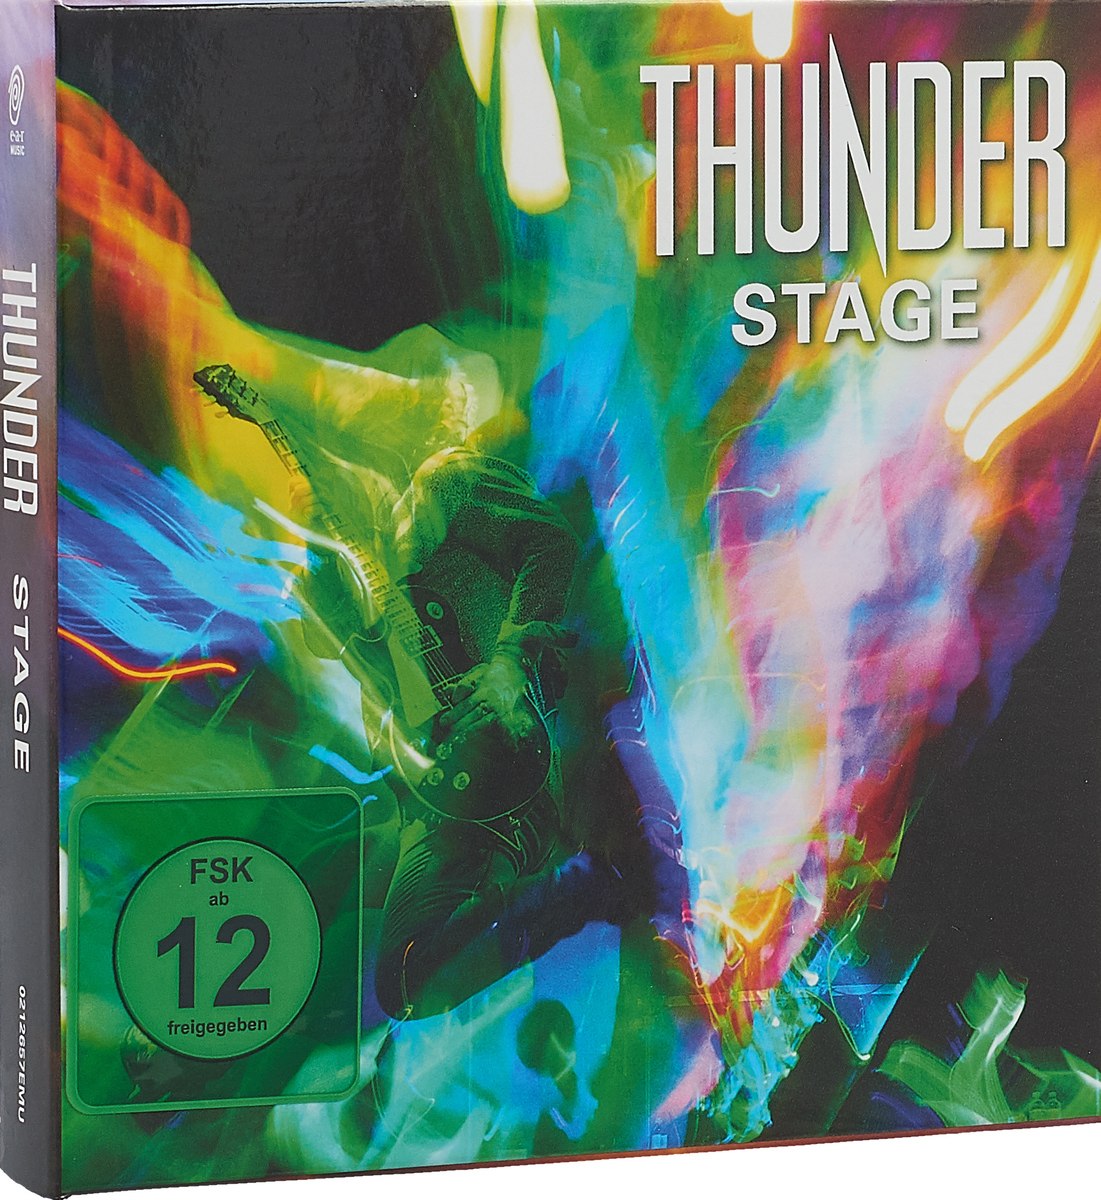 Thunder: Stage. Limited Super Video (Blu-ray + DVD) semyon bychkov giuseppe verdi otello blu ray